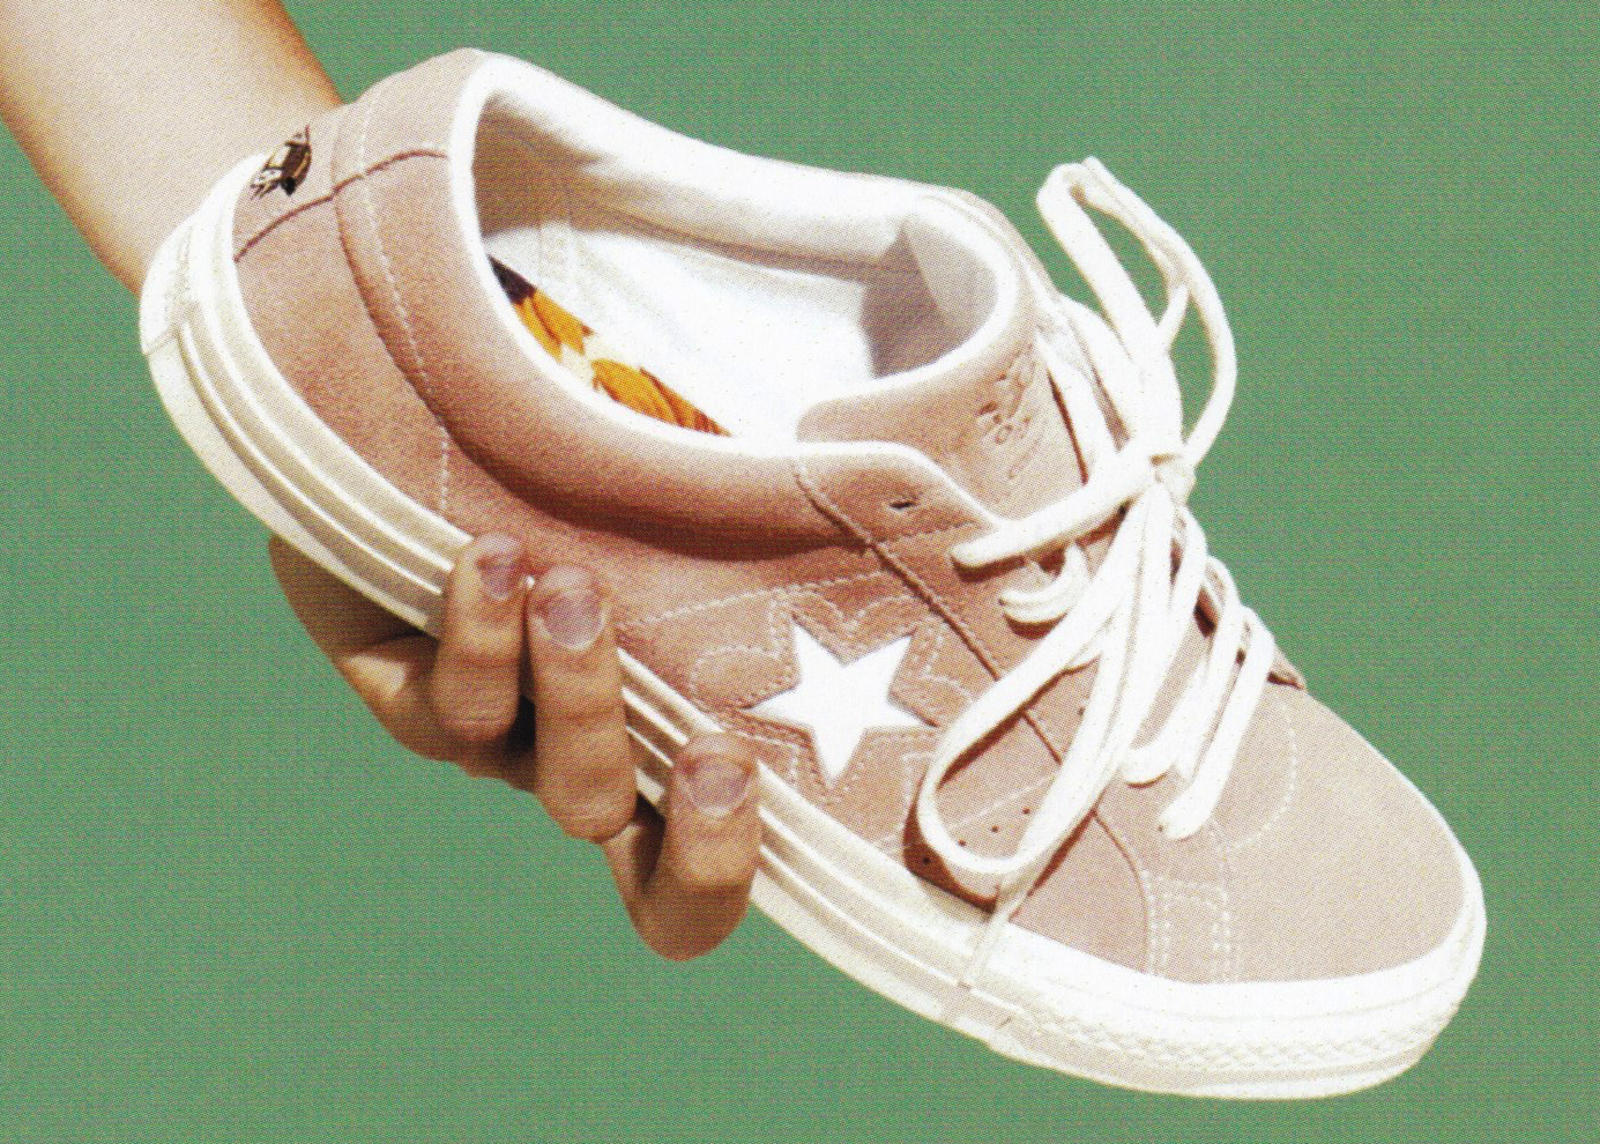 converse one star x golf